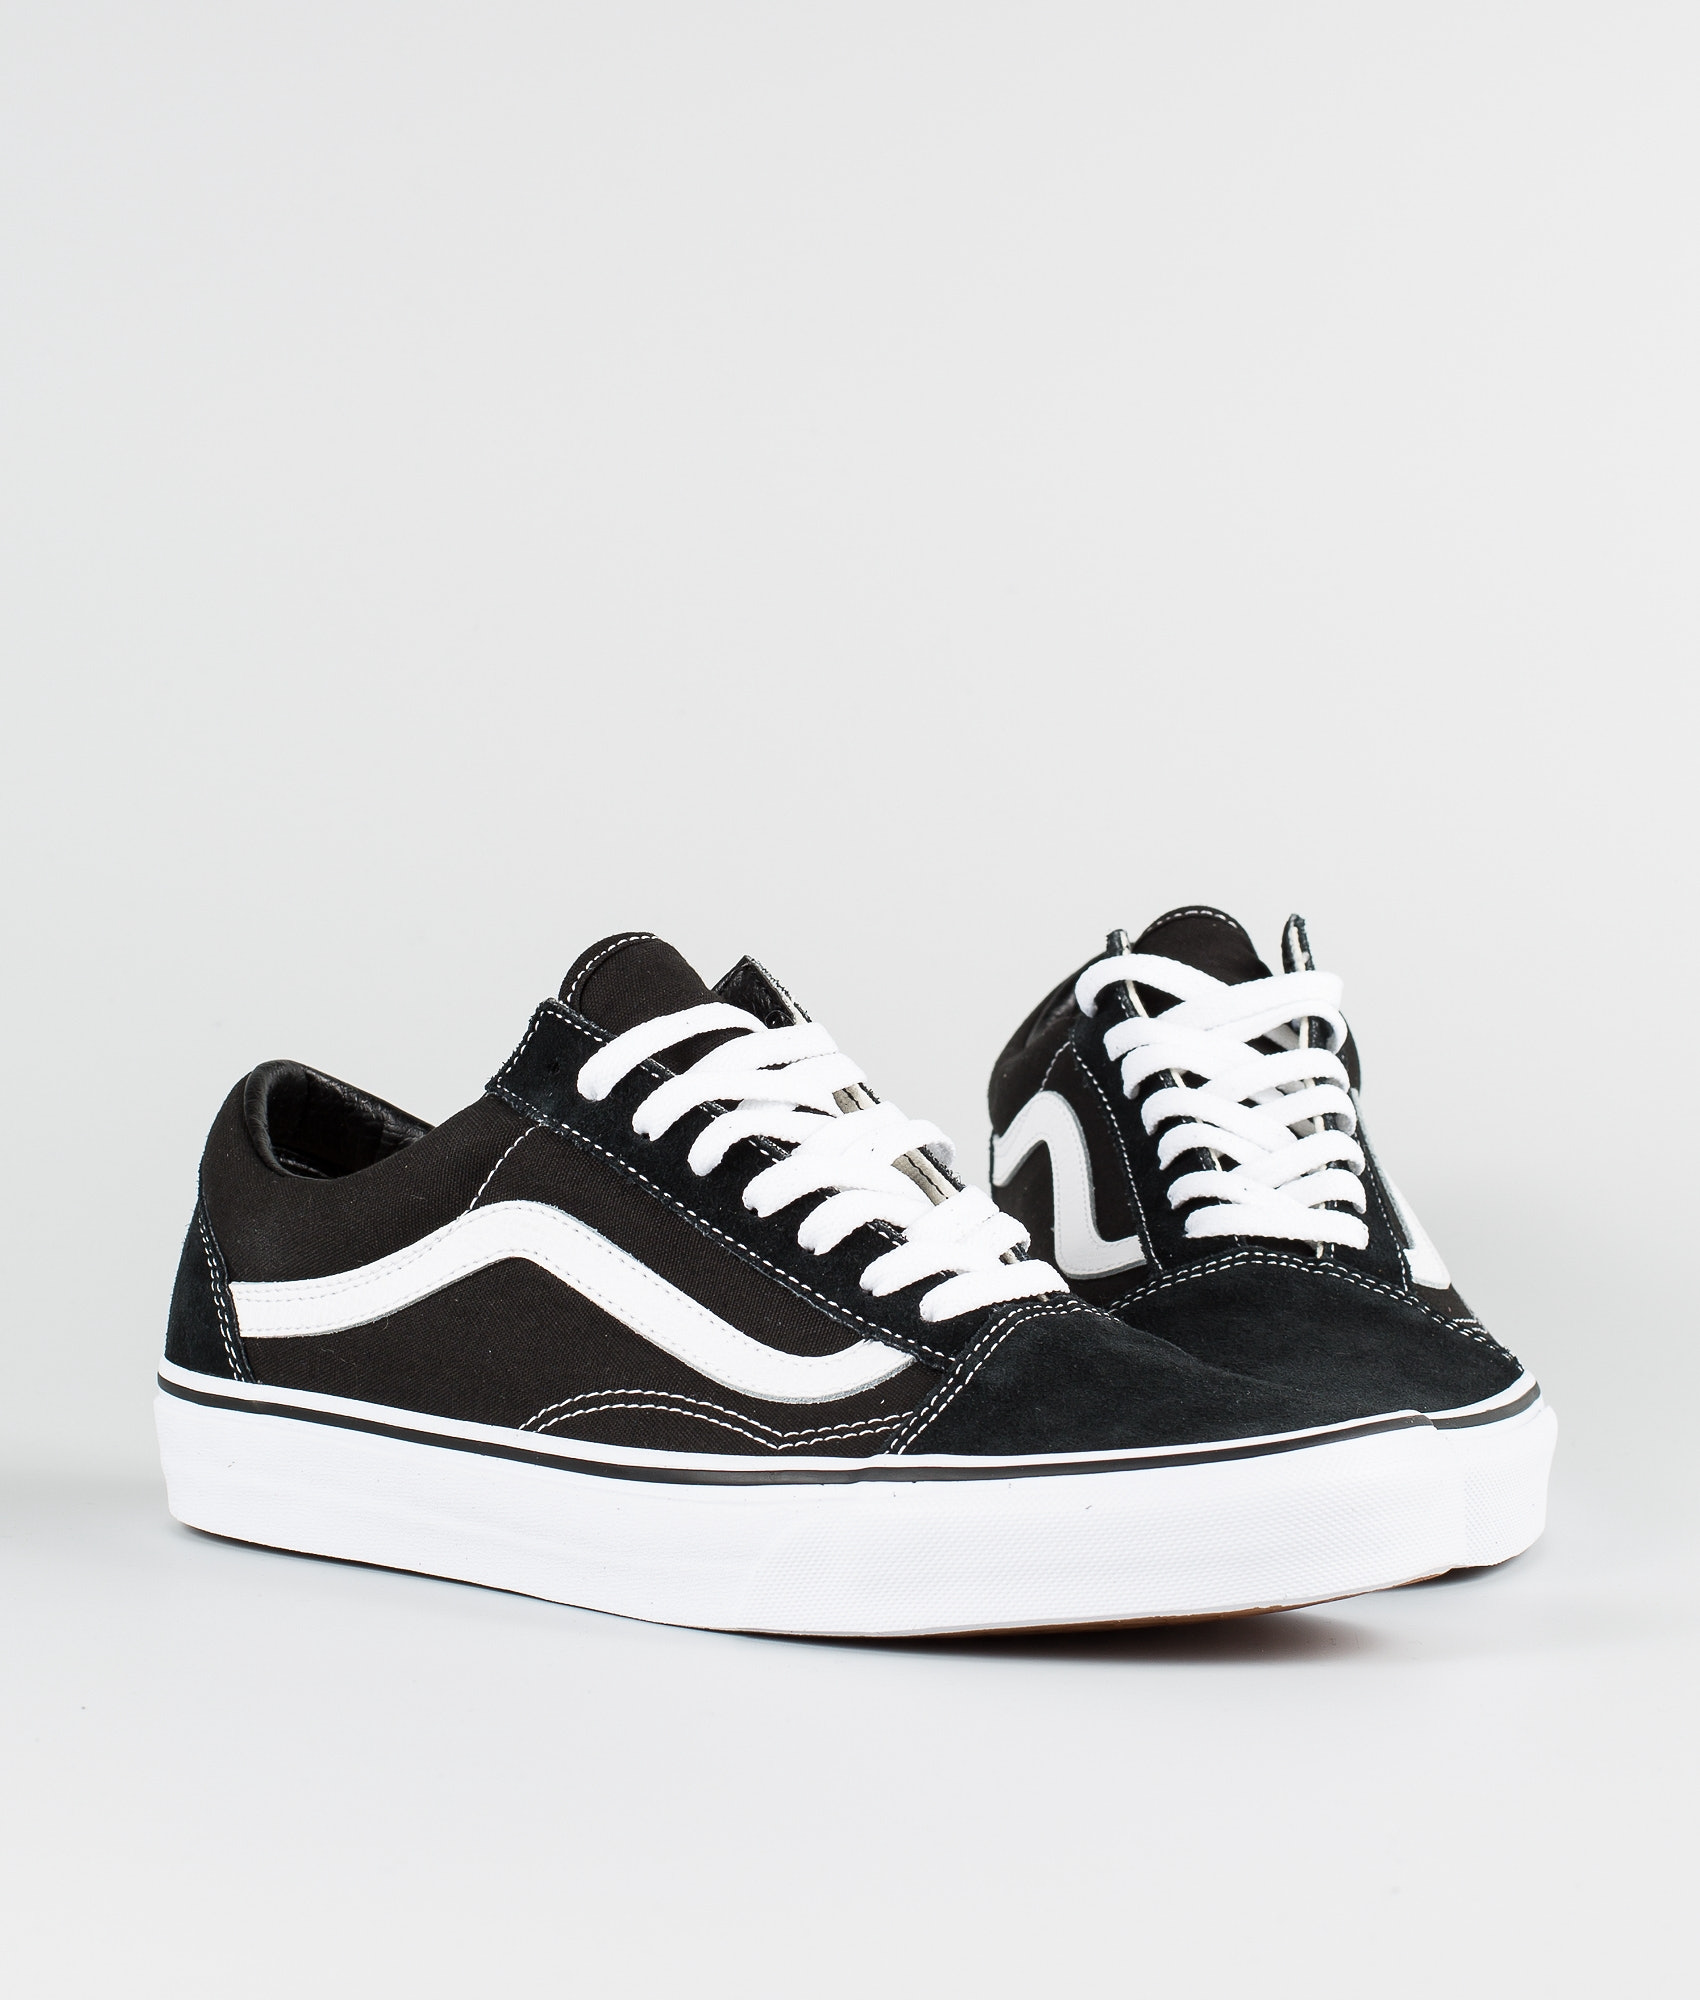 Vans Old Skool Shoes Black White - Ridestore.com b814ba6f0987